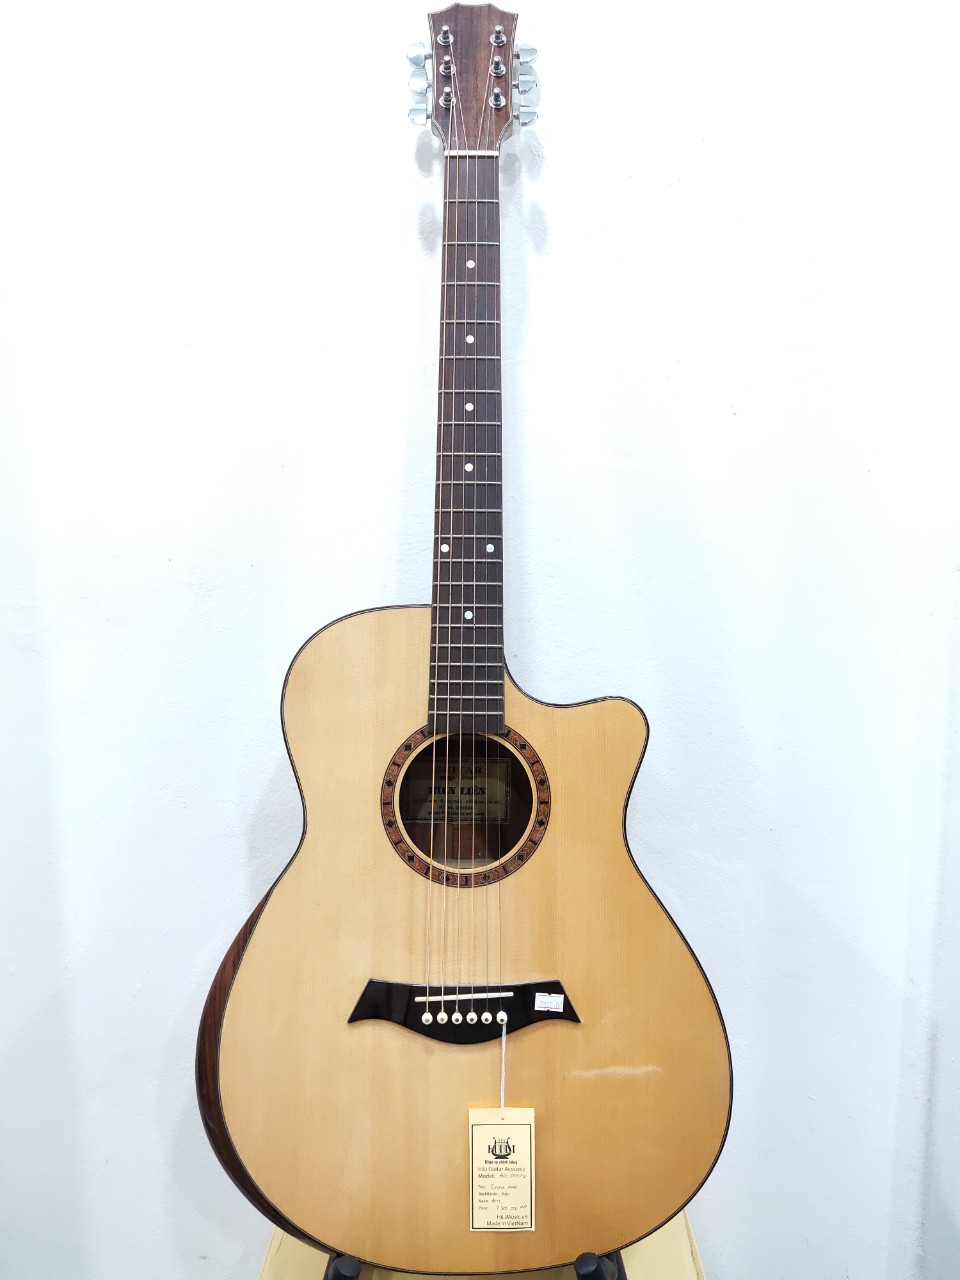 Đàn Guitar Acoustic AG-26DV made in VietNam